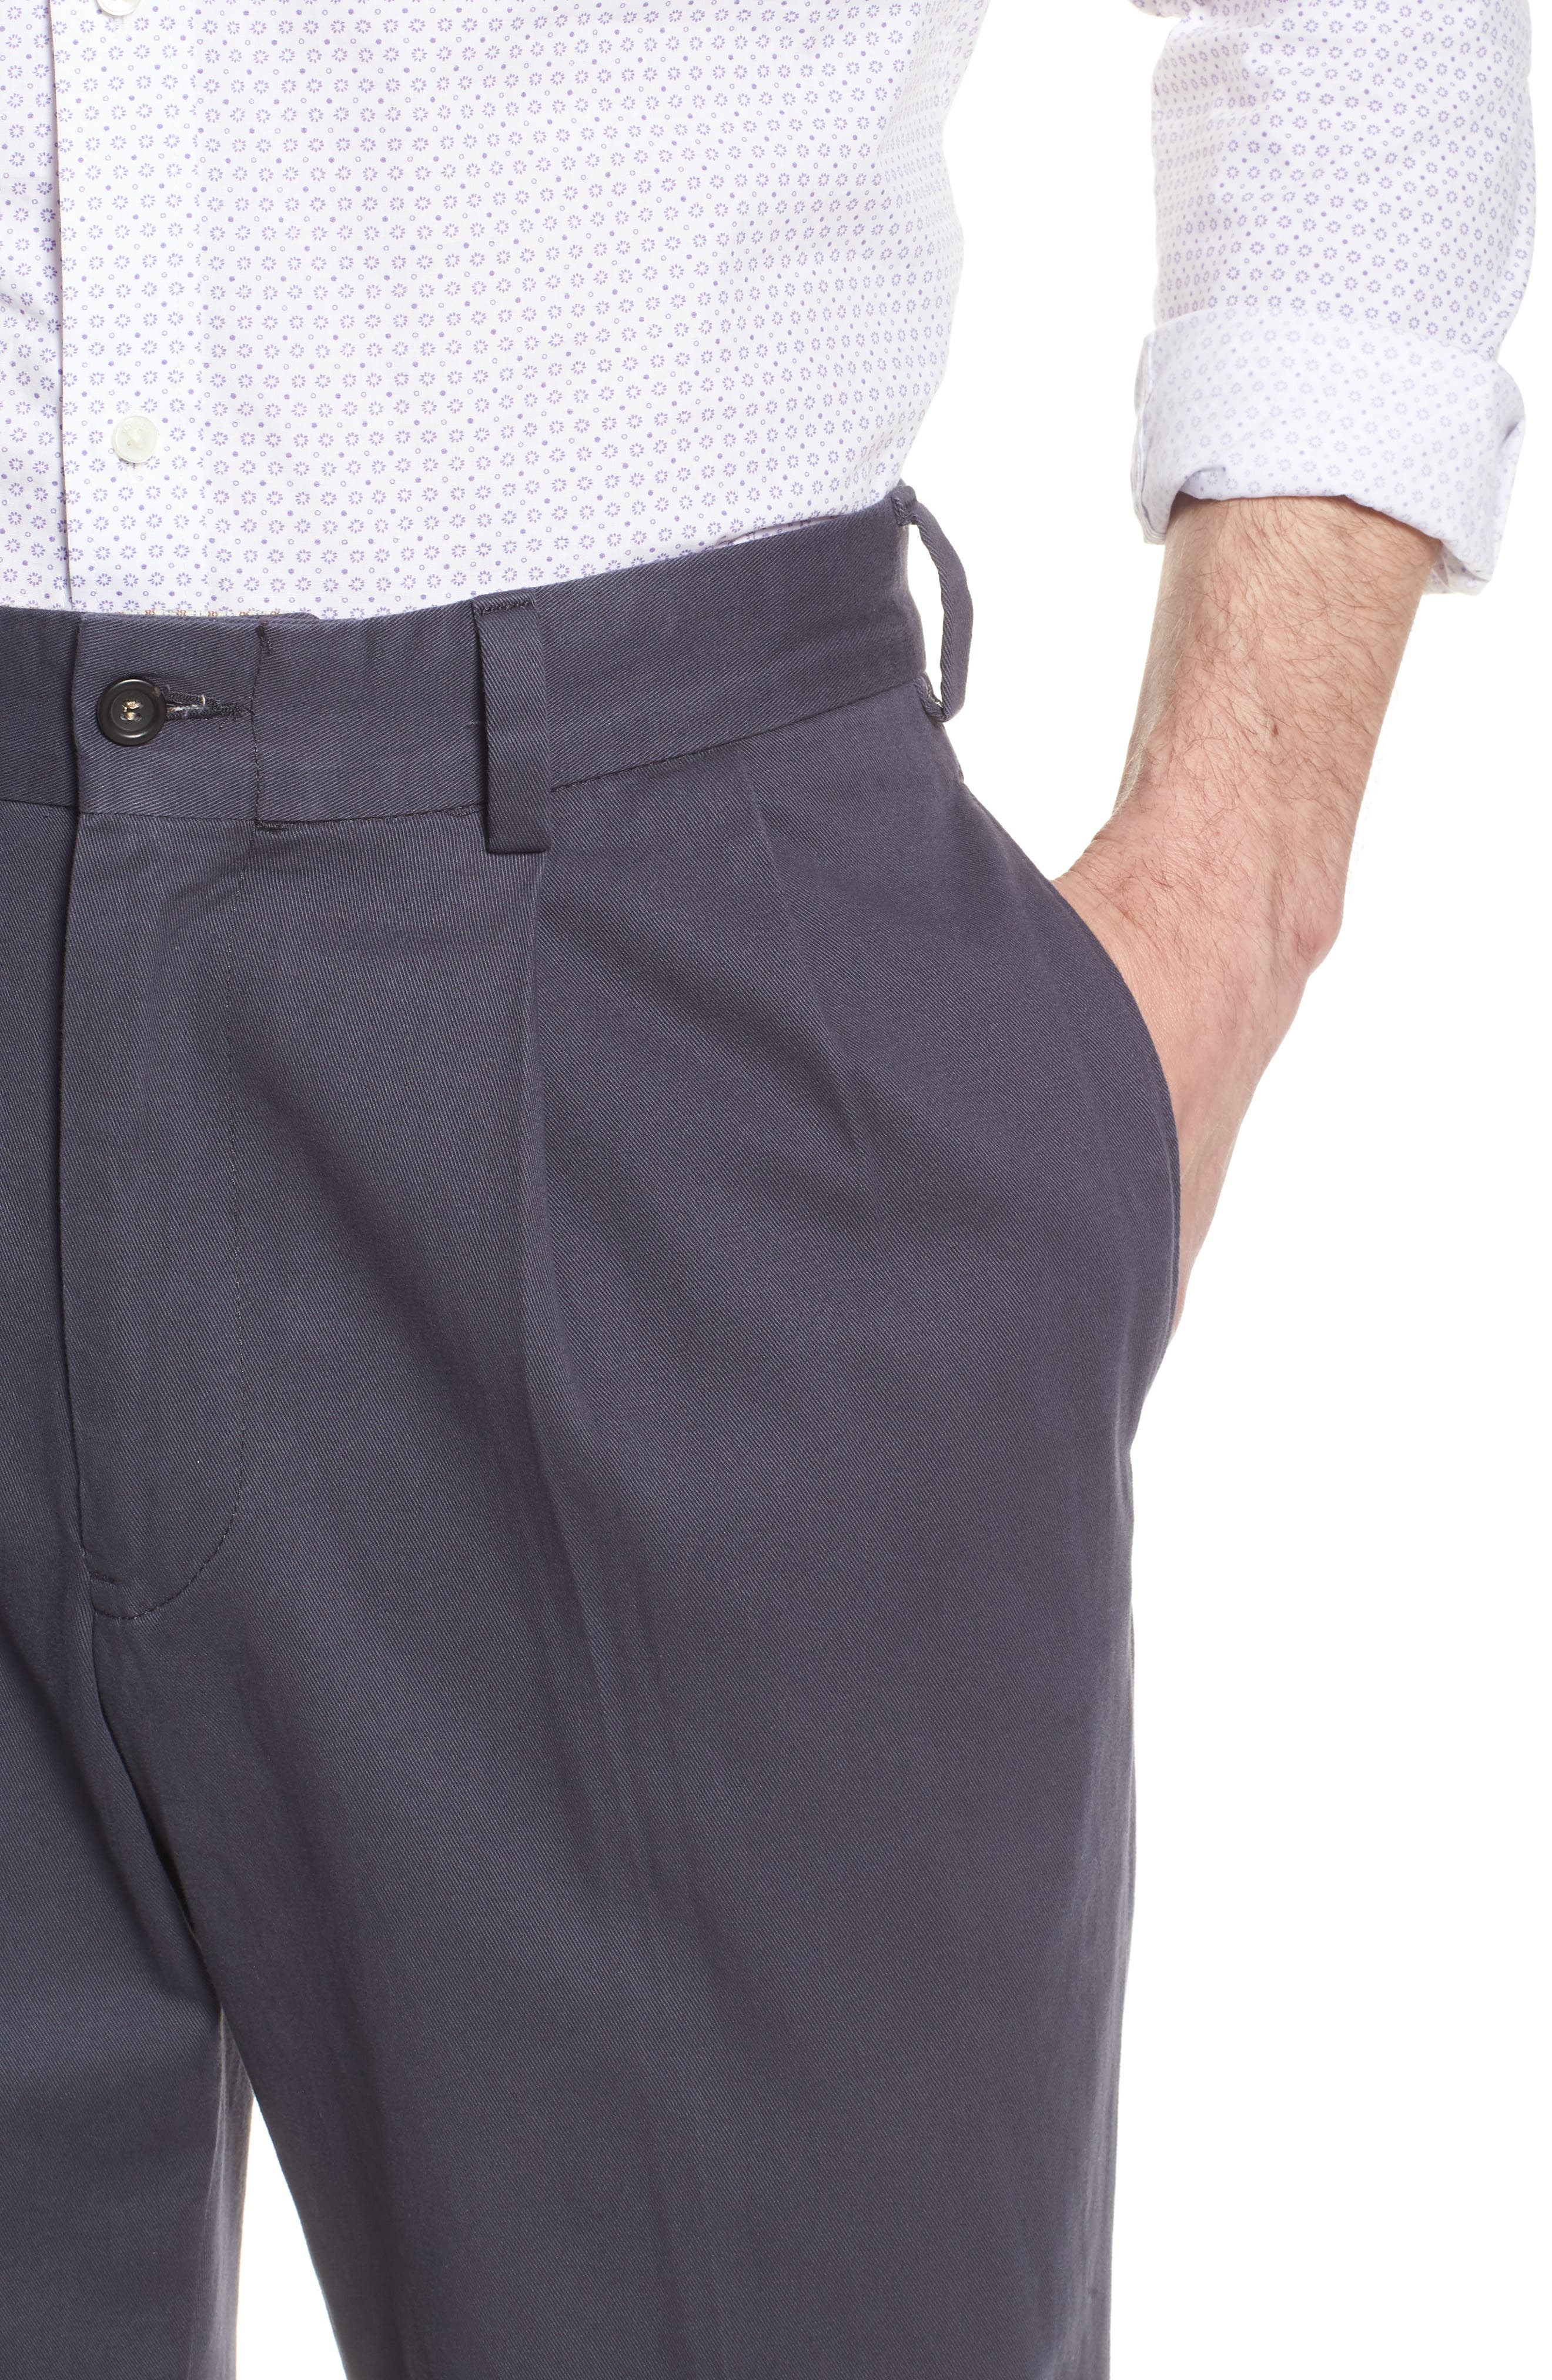 M2 Classic Fit Vintage Twill Pleated Pants,                             Alternate thumbnail 4, color,                             410